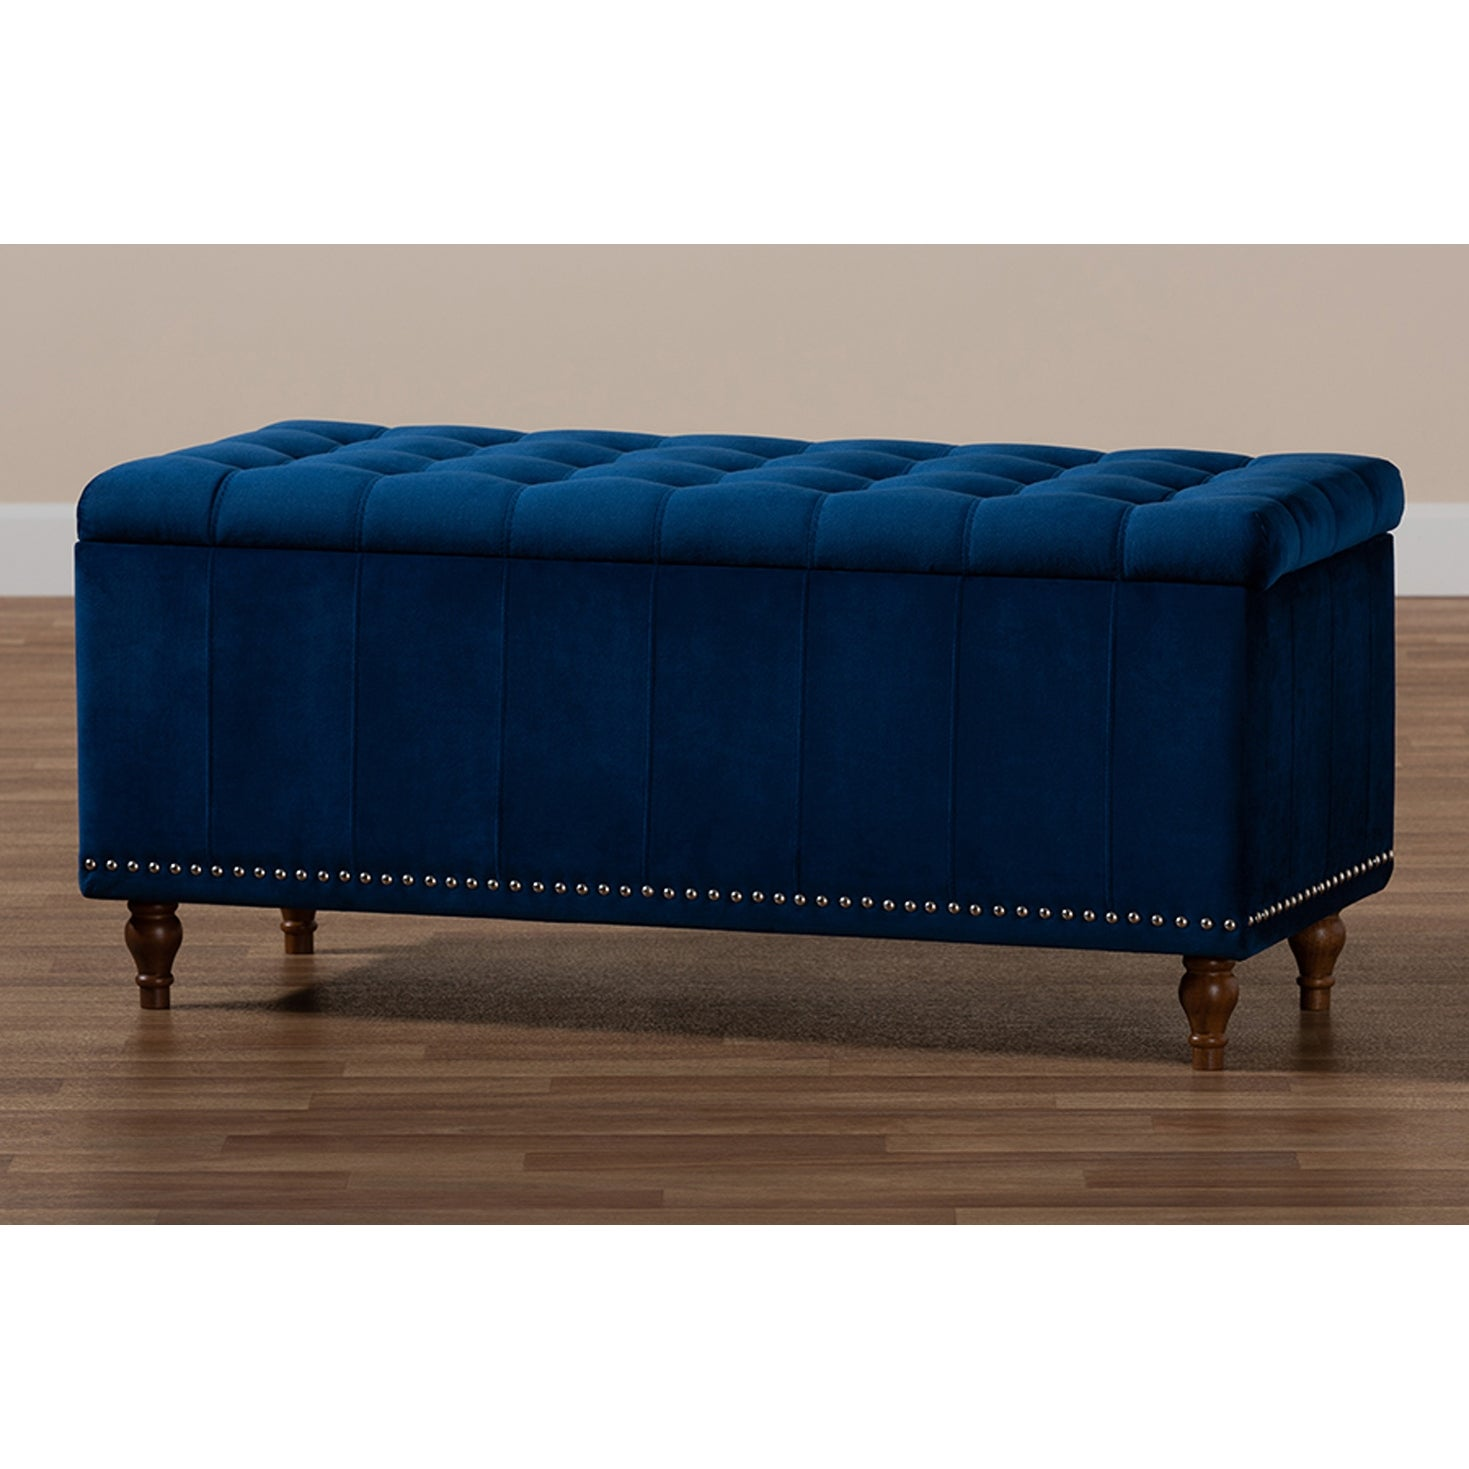 Theodore Navy Blue Velvet Fabric Button Tufted Storage Ottoman Bench Overstock 29897756